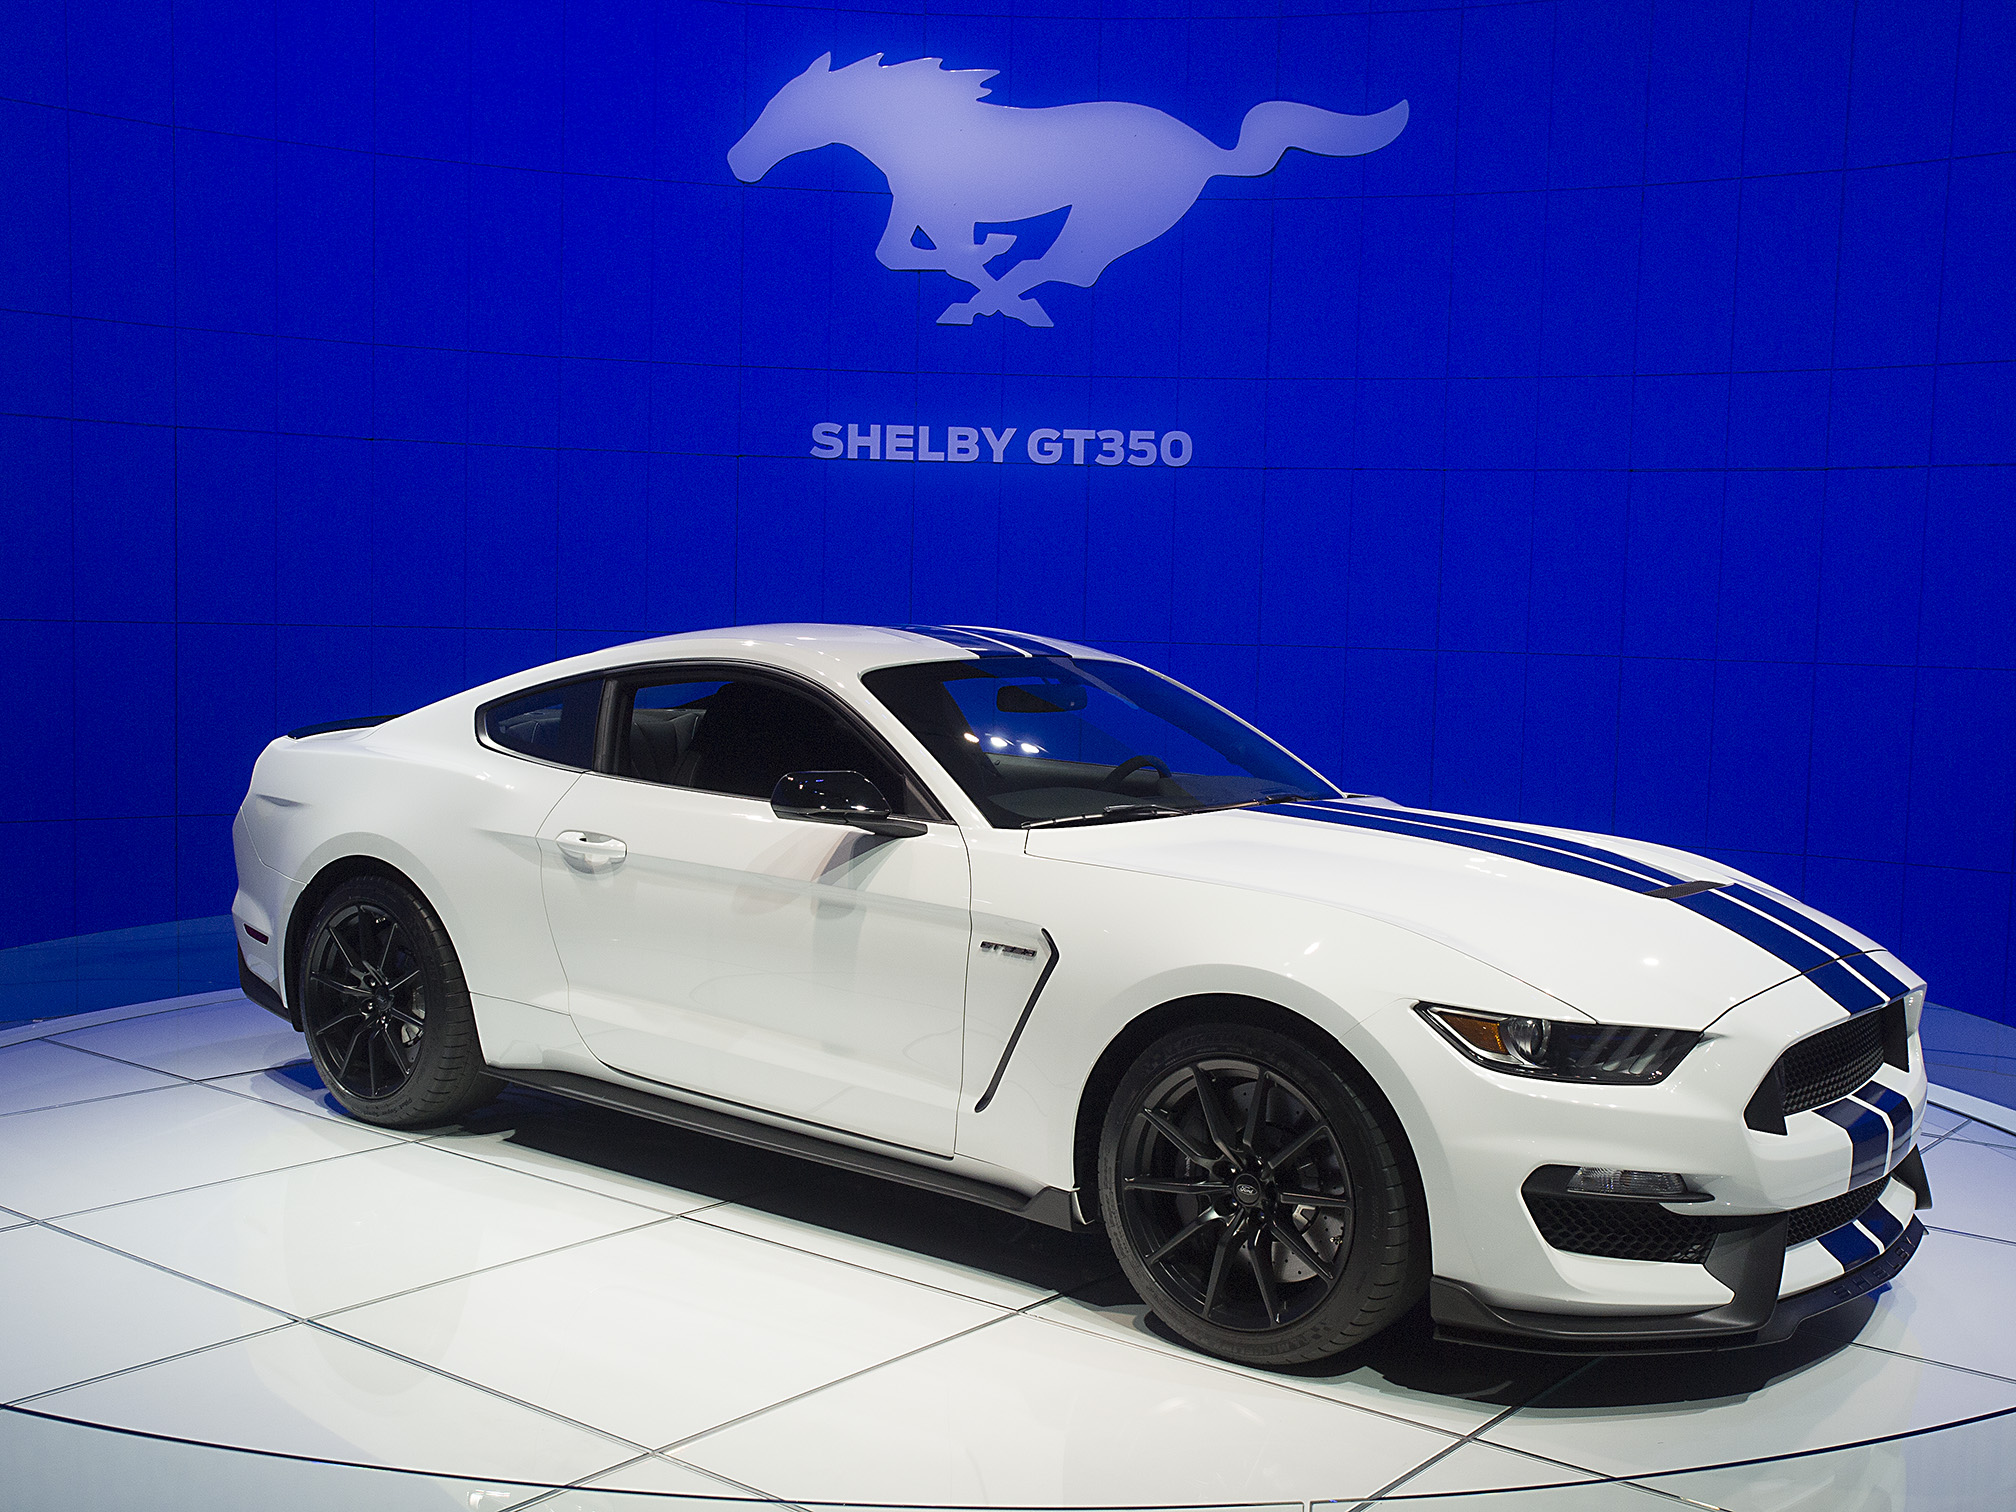 2016 2017 ford shelby gt350 mustang gallery 578828 top speed. Black Bedroom Furniture Sets. Home Design Ideas